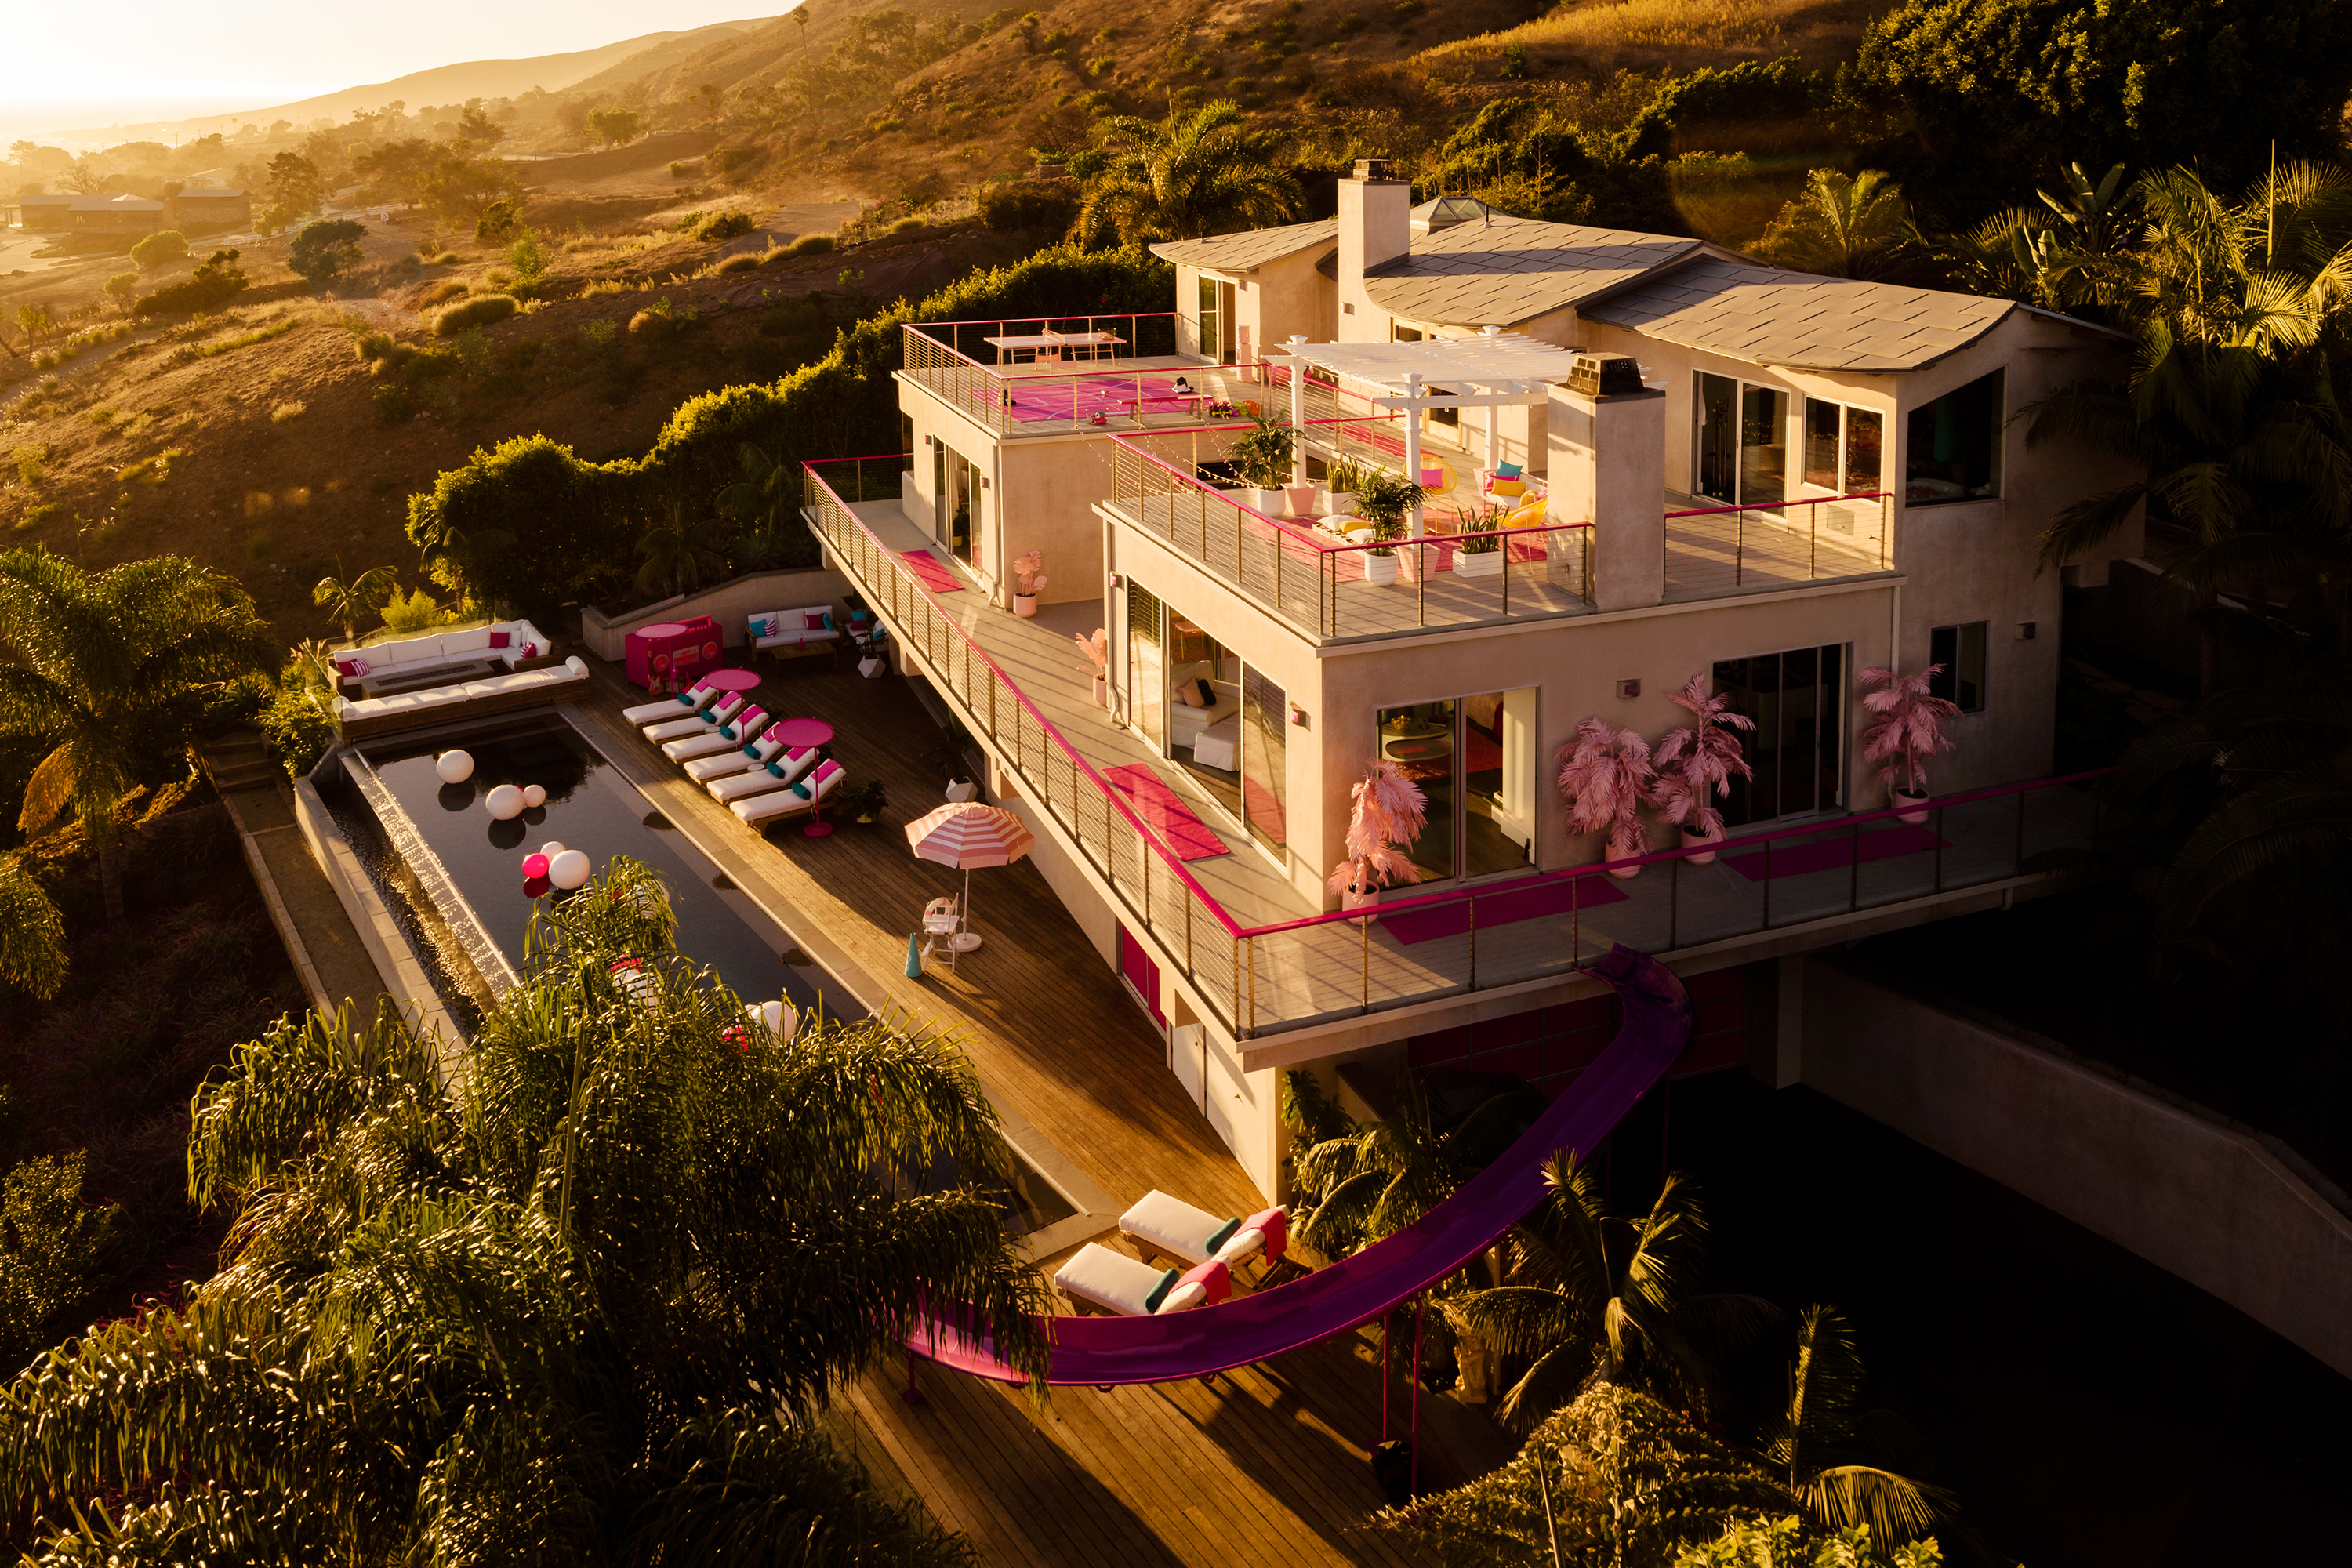 Barbie's Malibu Dreamhouse Is Now on Airbnb for Only $60 a ... on